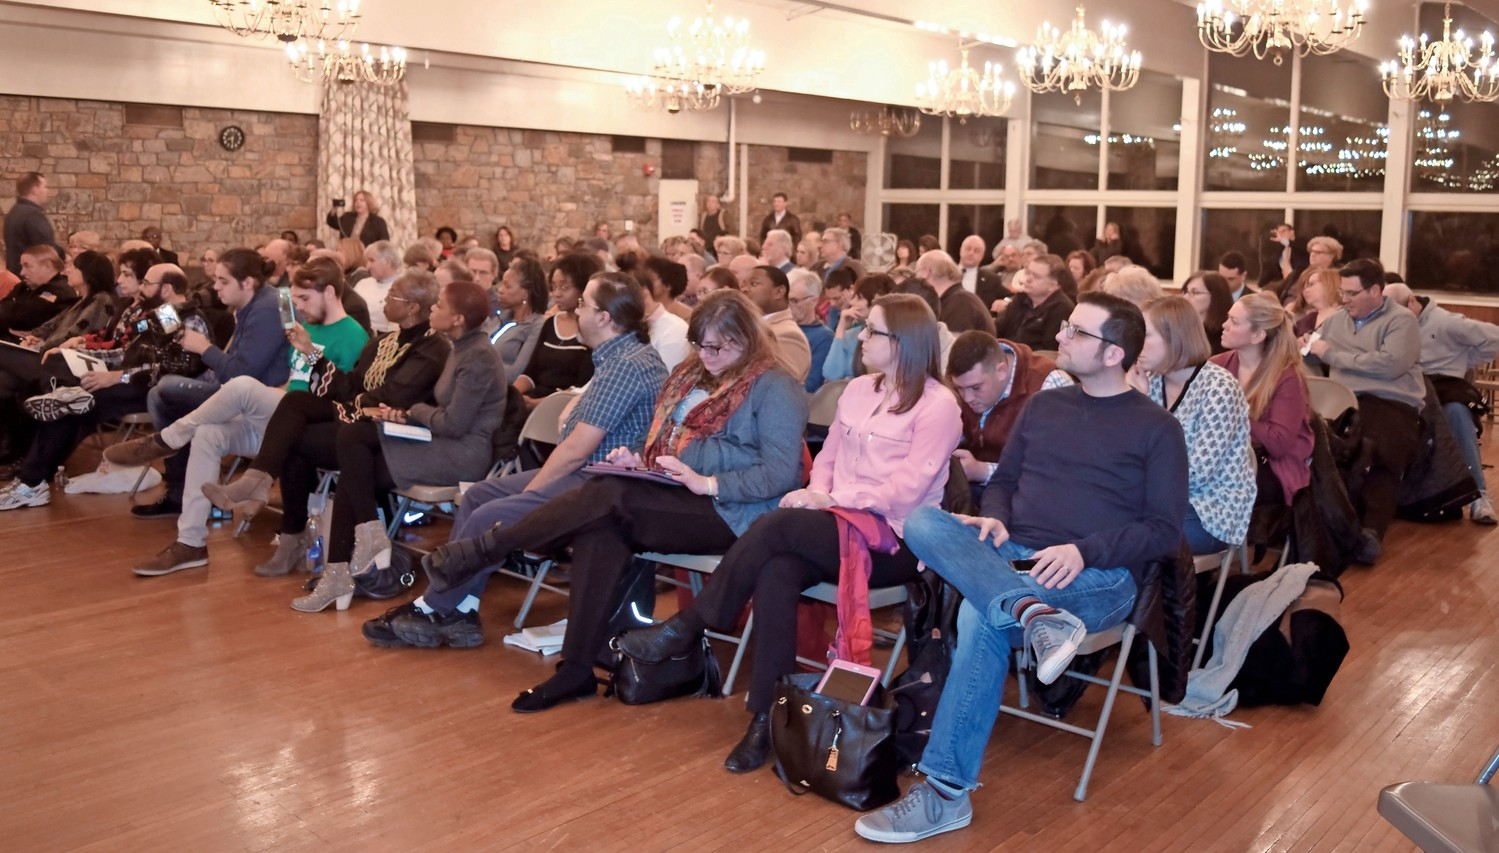 More than 60 people attended the forum at the Merrick Golf Course Clubhouse on Jan. 25.